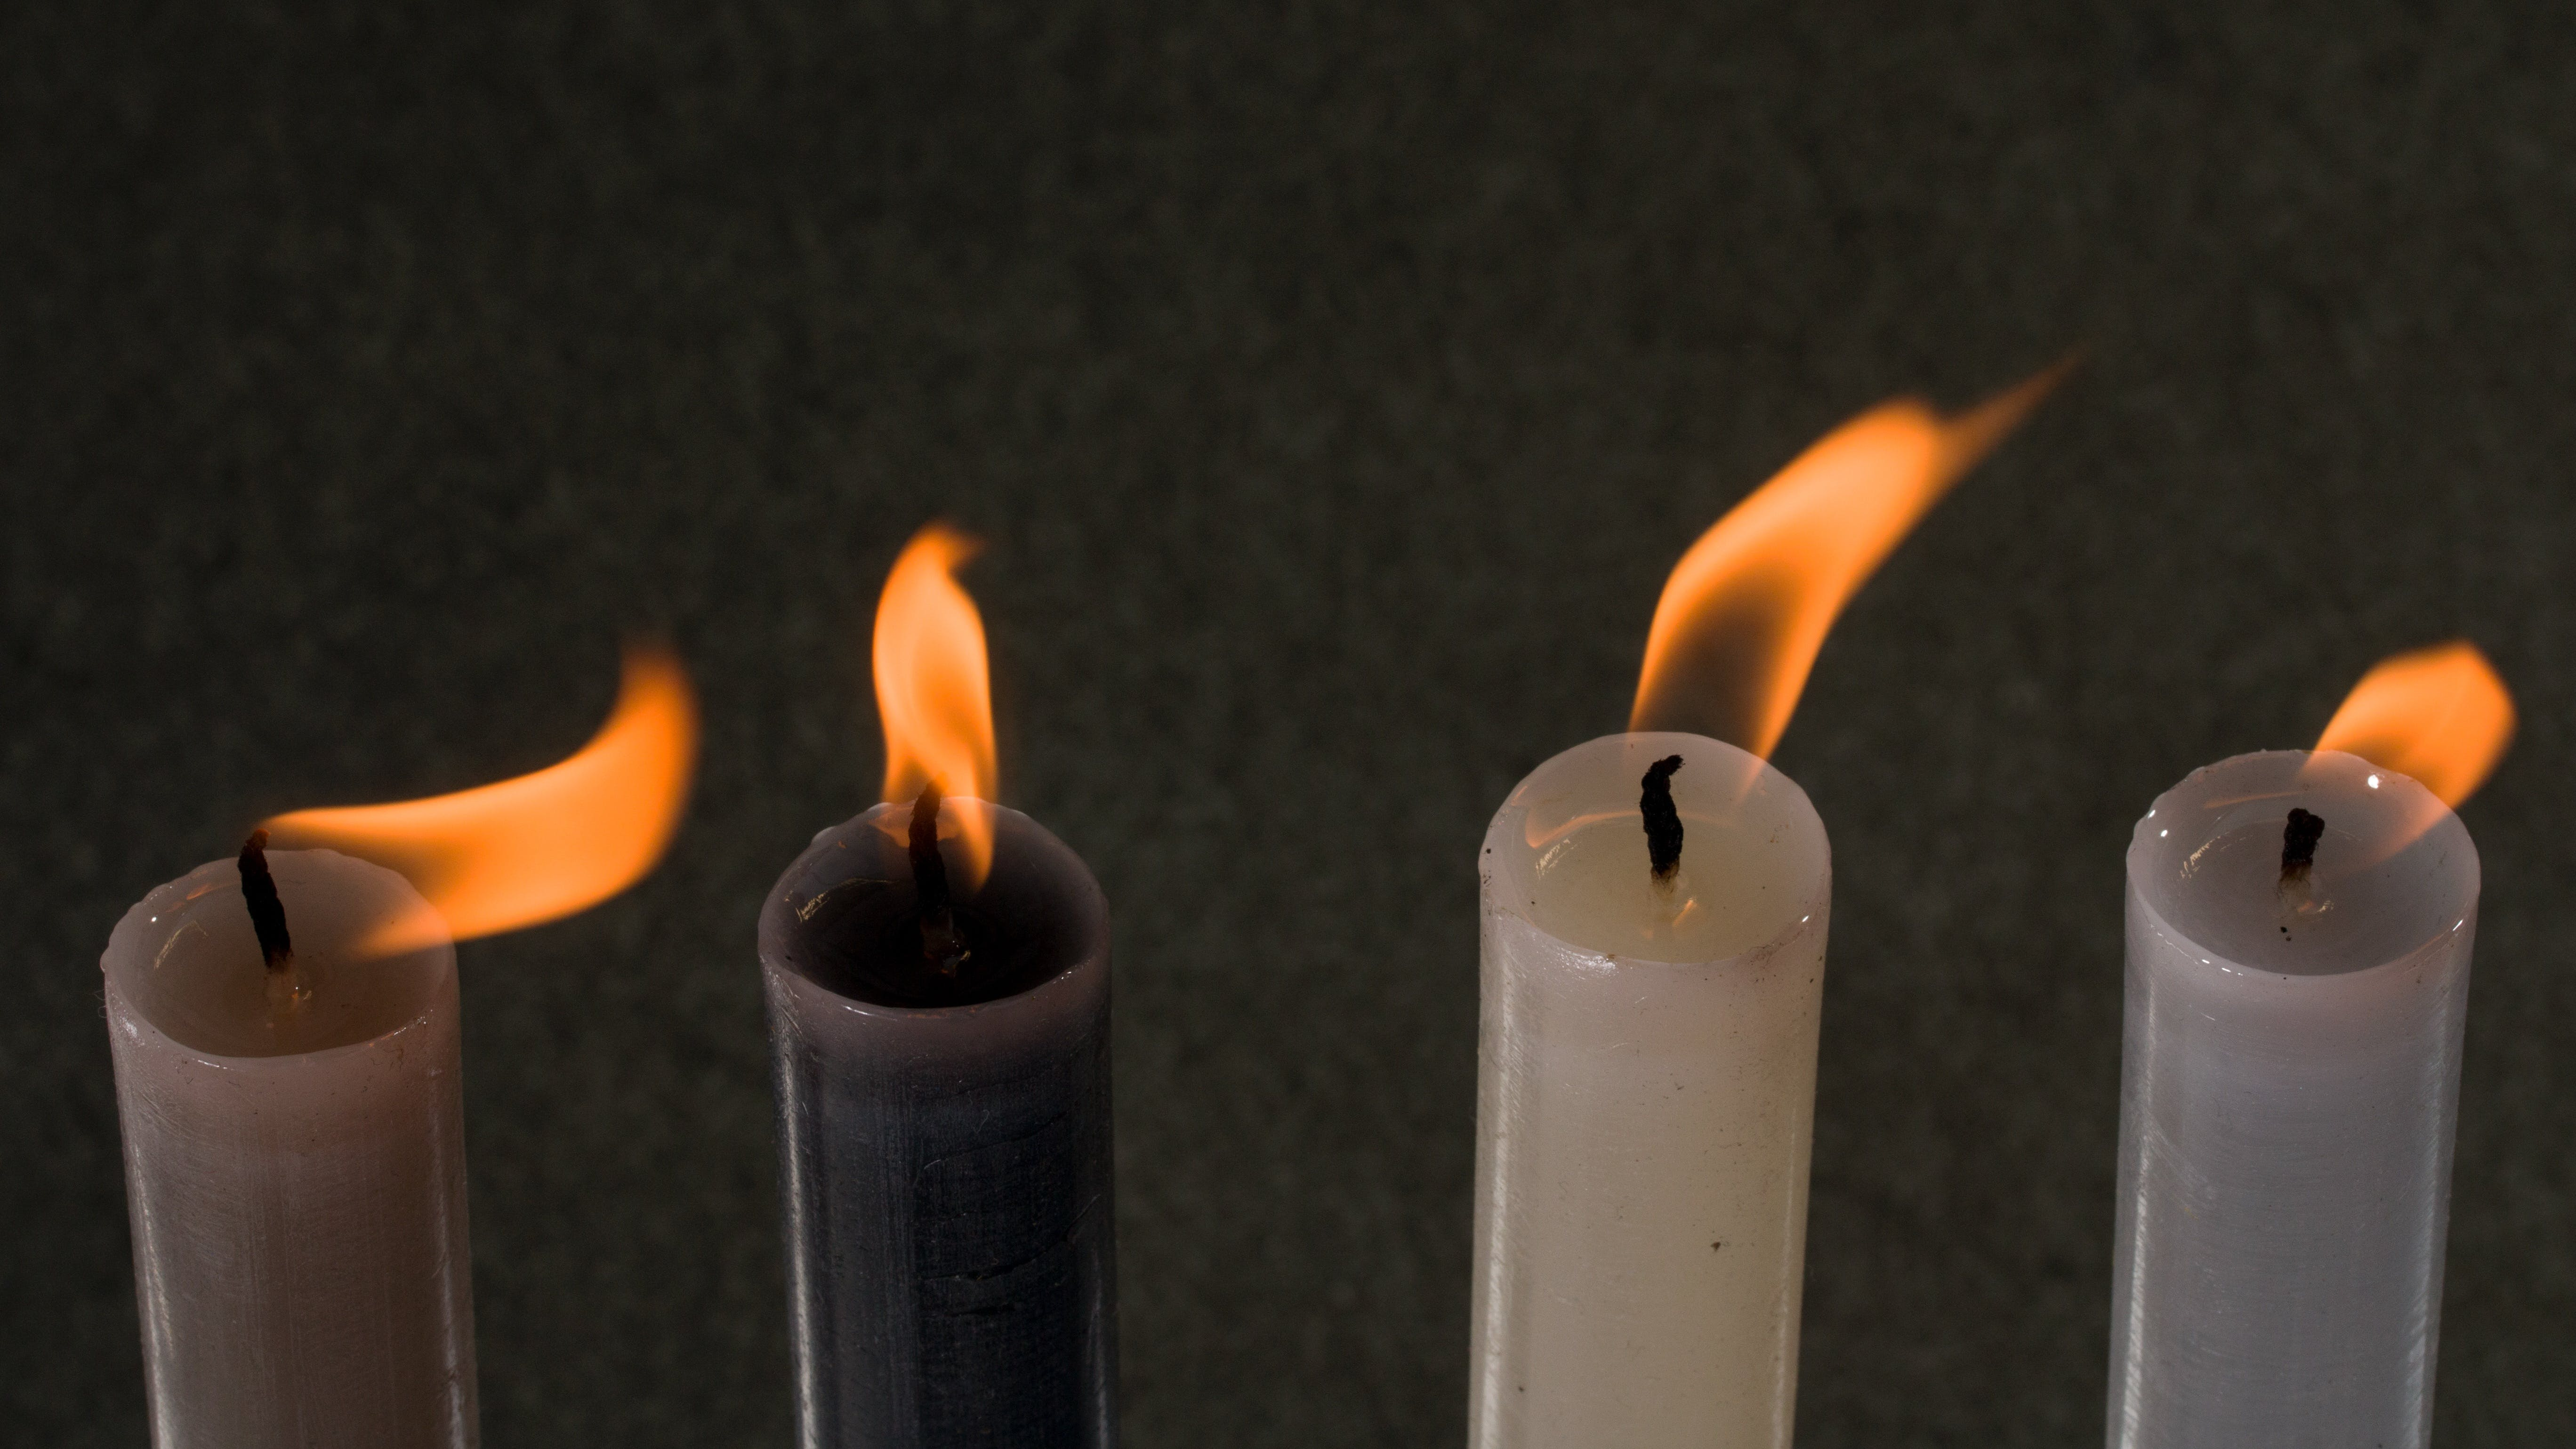 Free stock photo of light, candlelight, candles, flame